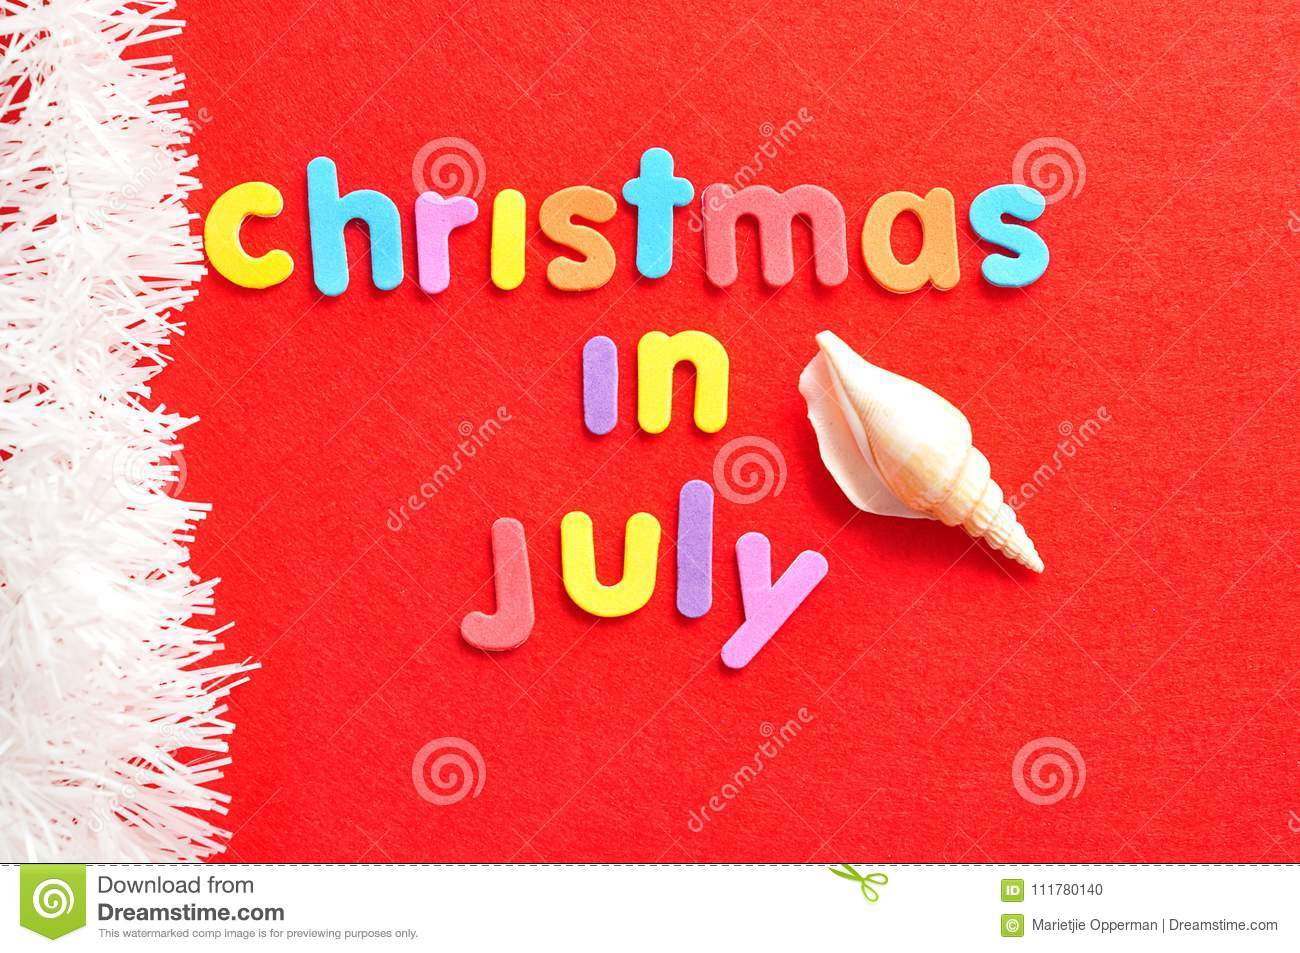 Christmas in July with a shell and a string of white tinsel